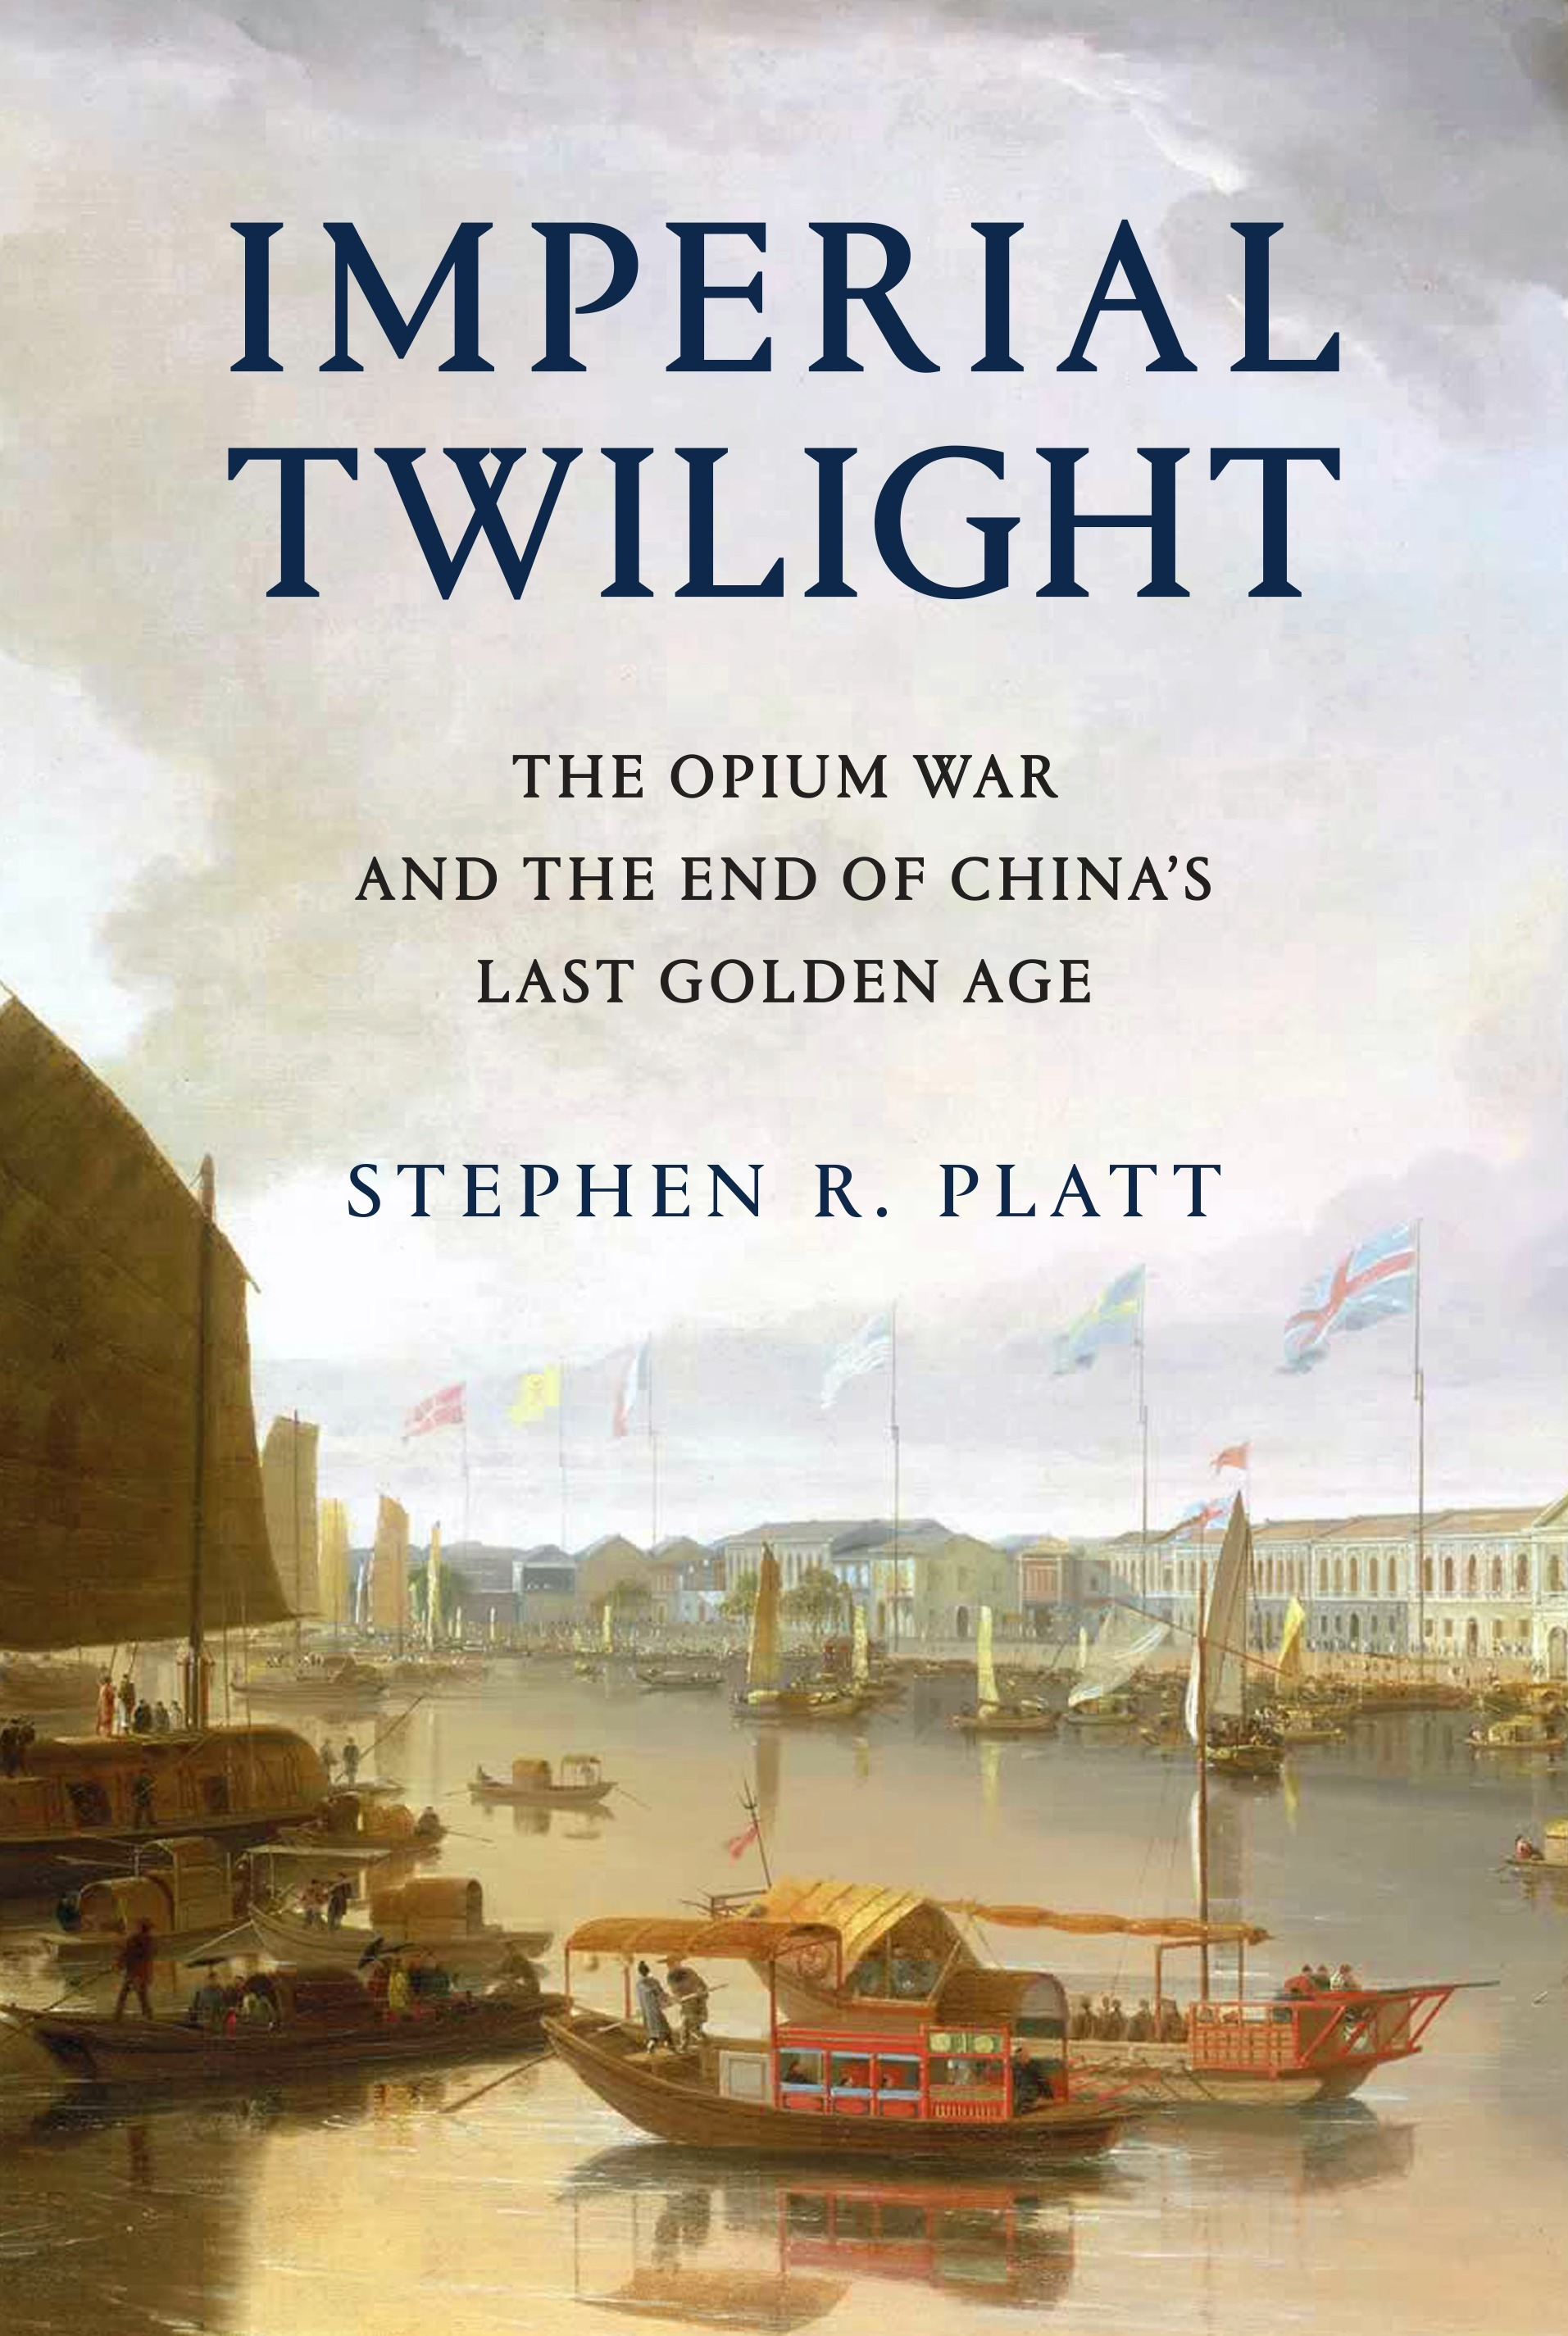 Imperial Twilight The Opium War and the End of China's Last Golden Age